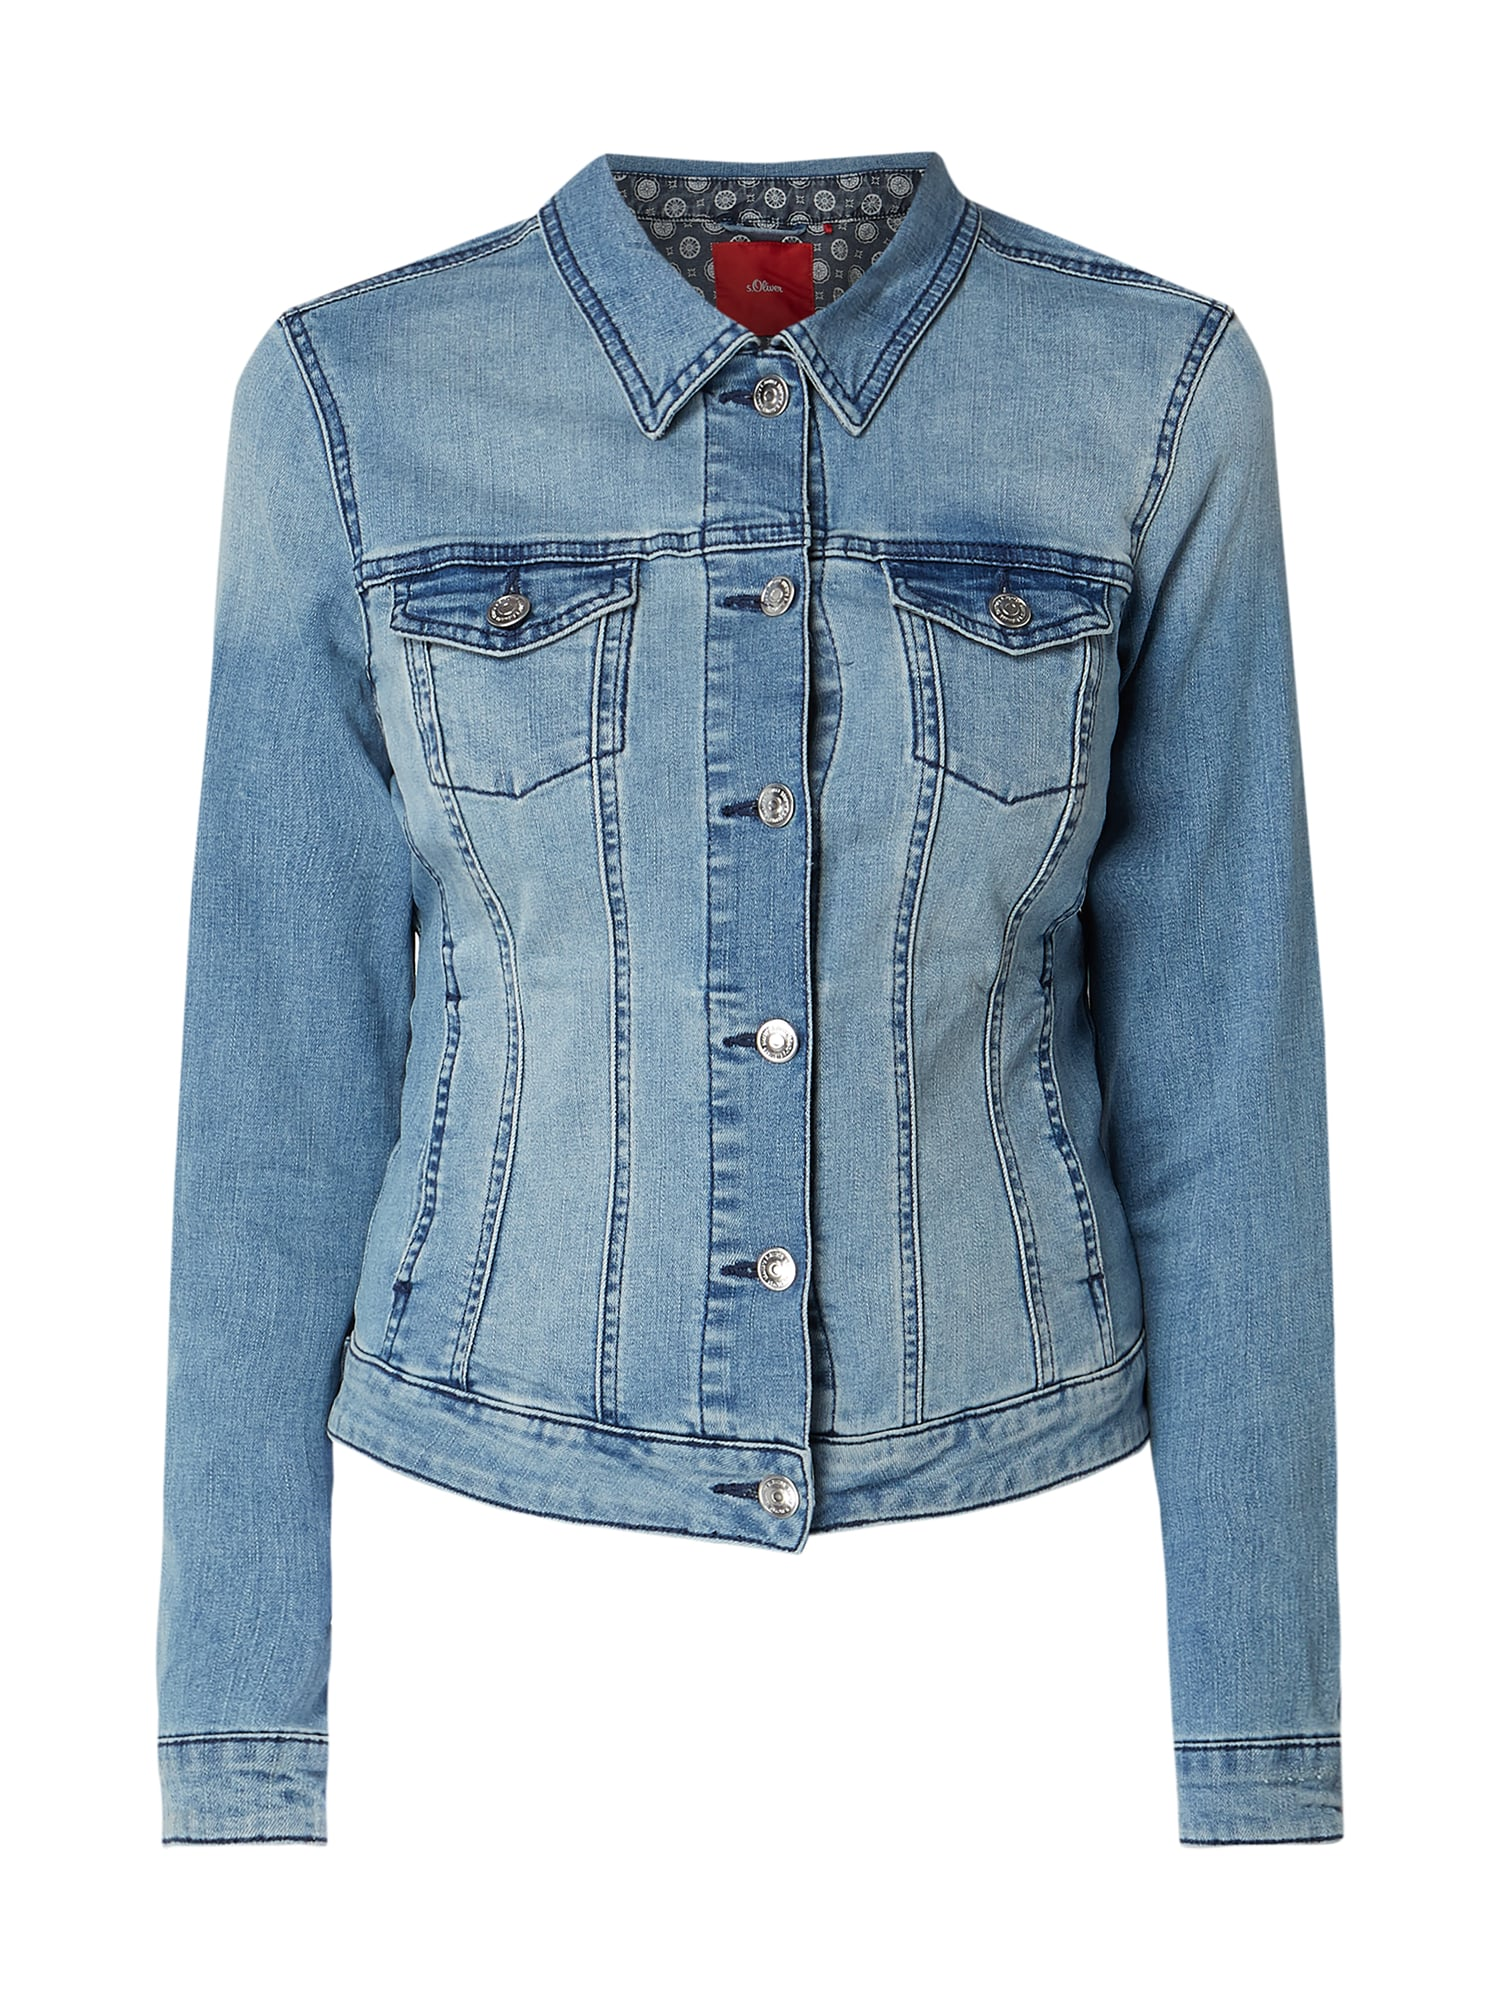 S Oliver Red Label Stone Washed Jeansjacke Mit Stretch Anteil In